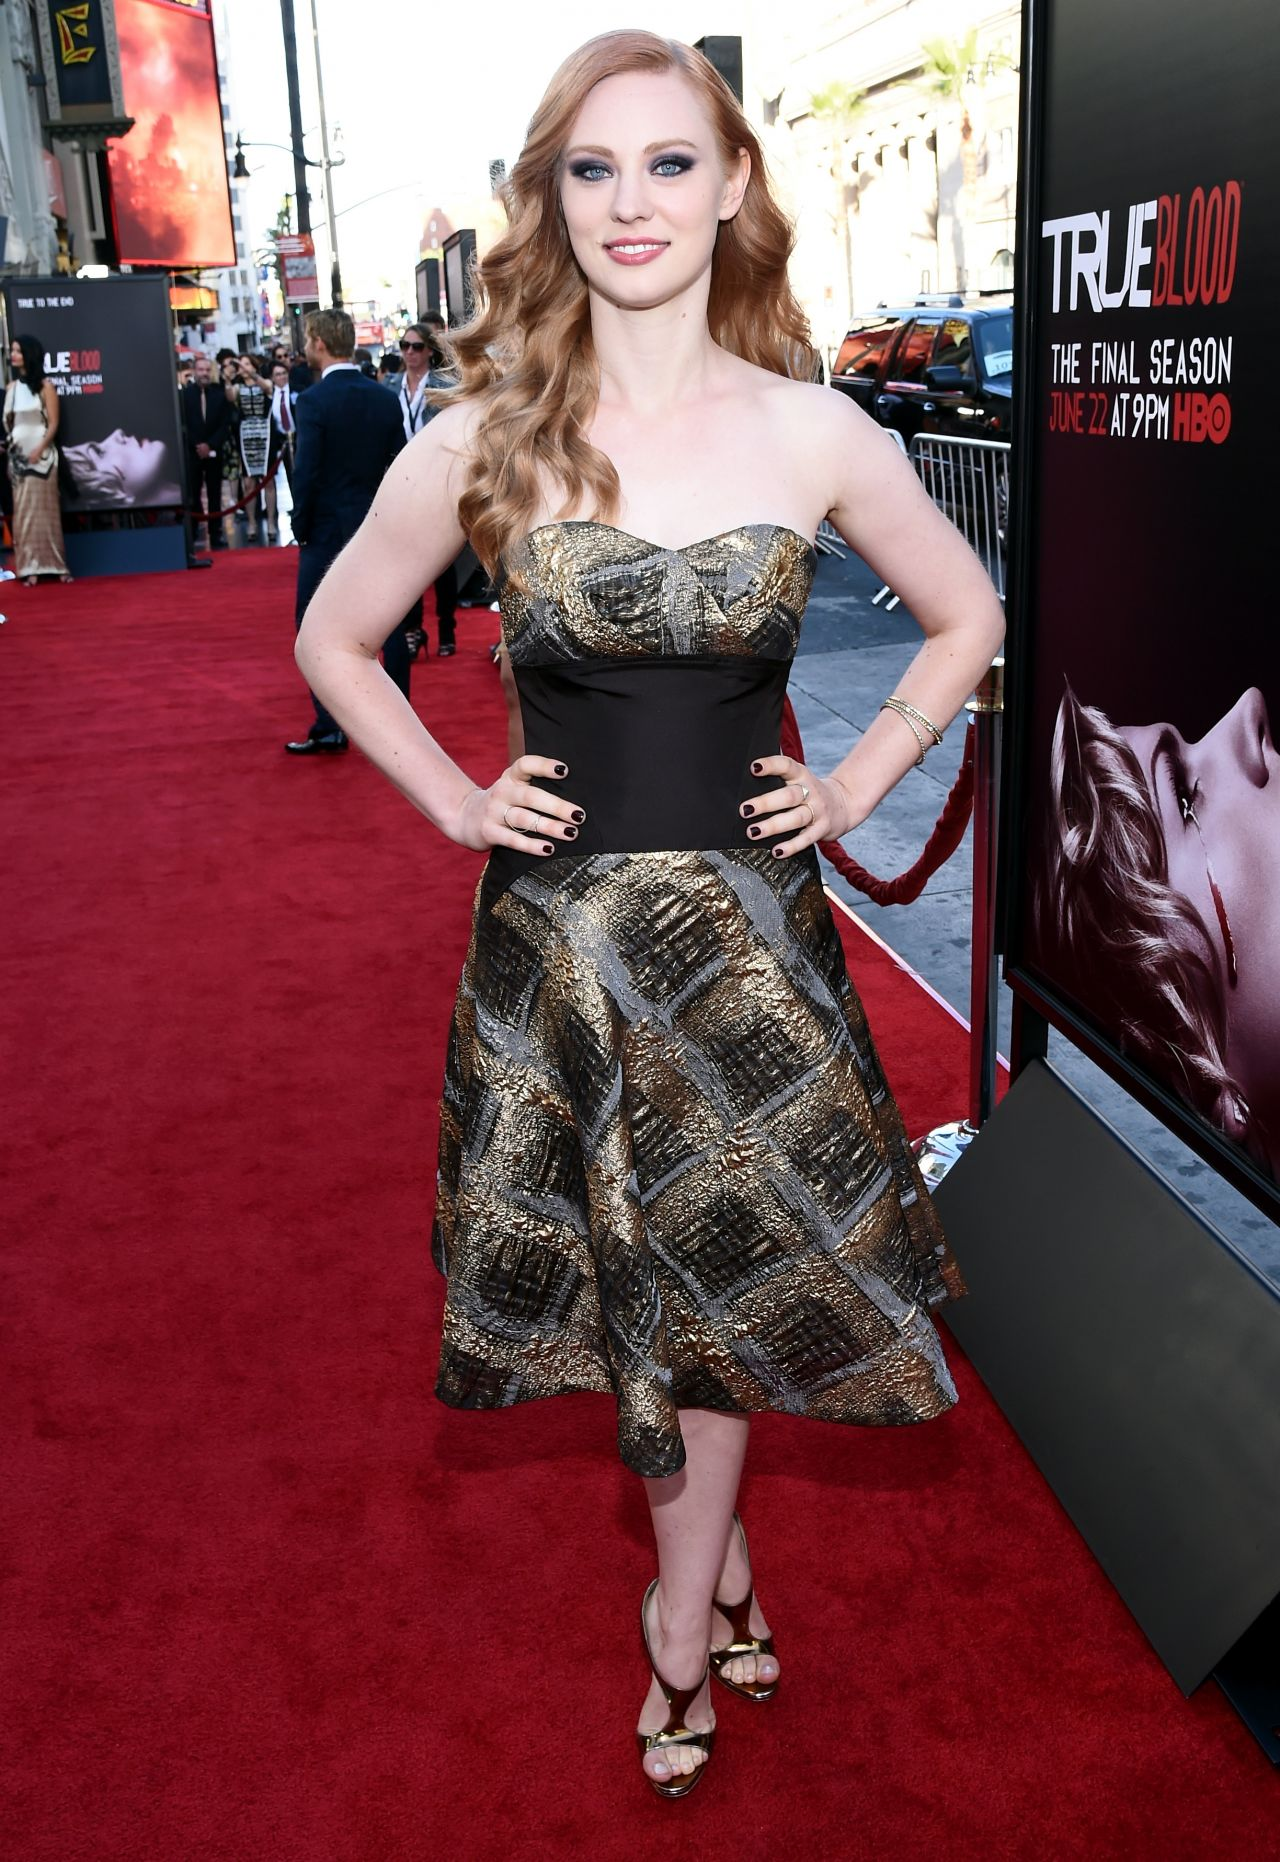 Deborah Ann Woll True Blood Tv Series Season 7 Premiere